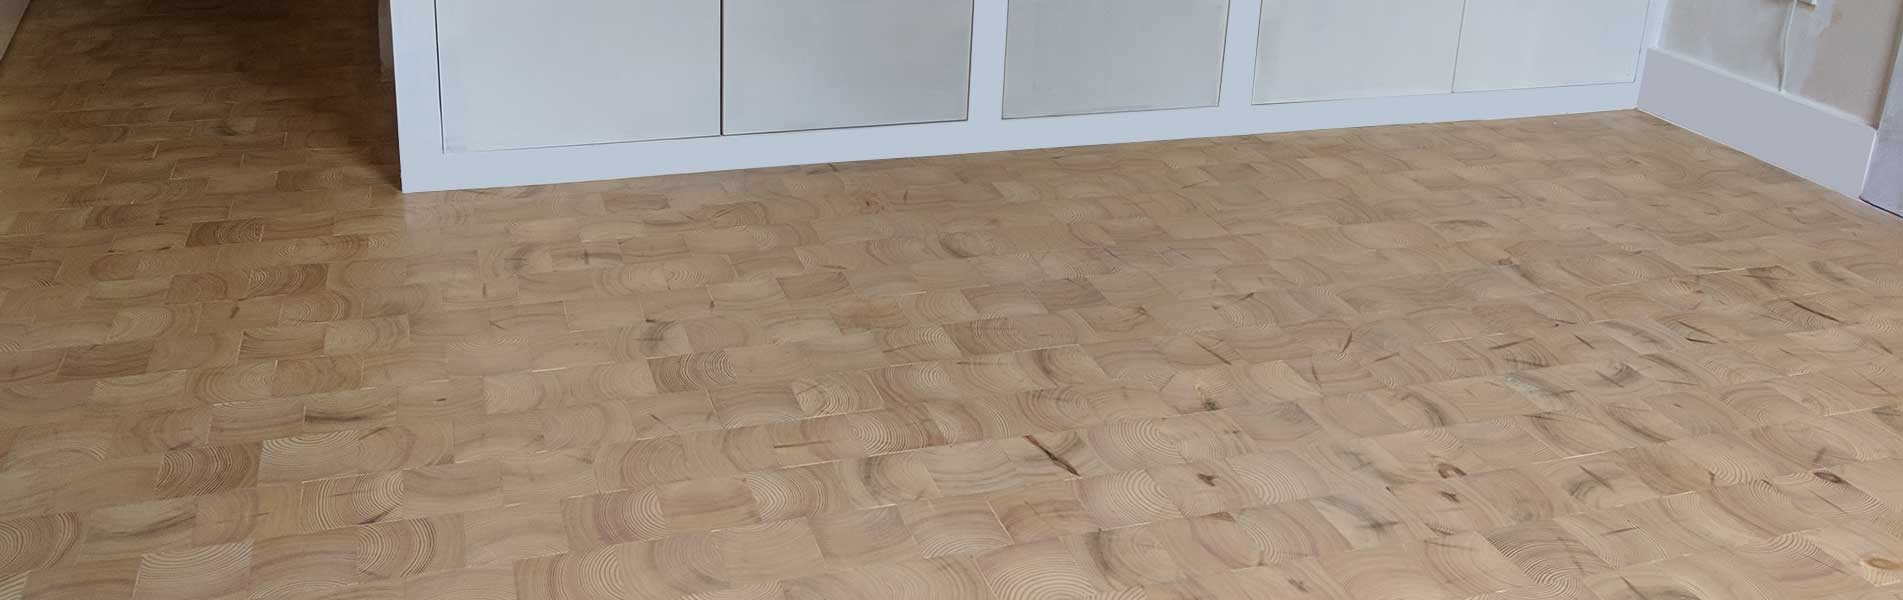 End Grain Flooring